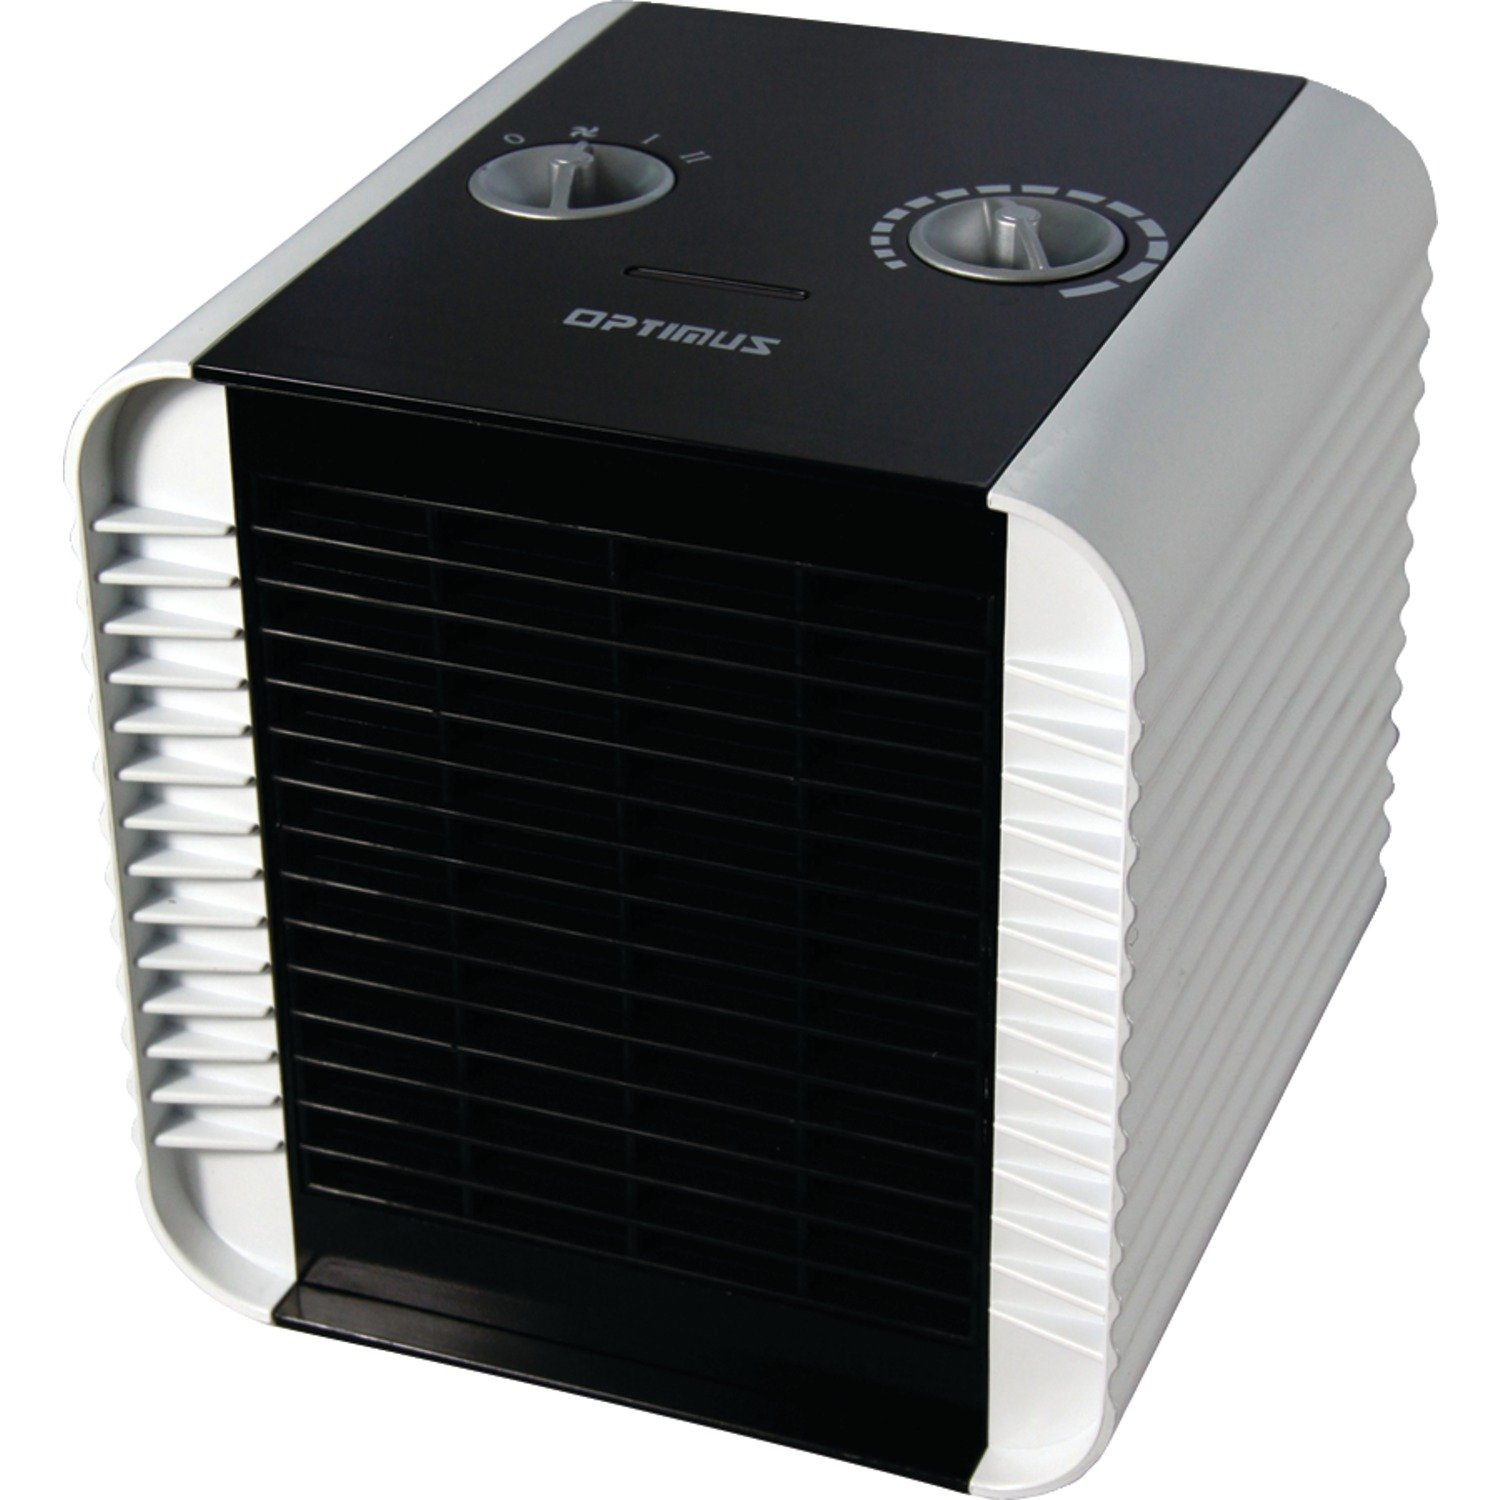 Amazon.com: Optimus H 7003 Portable Ceramic Heater With Thermostat: Home U0026  Kitchen